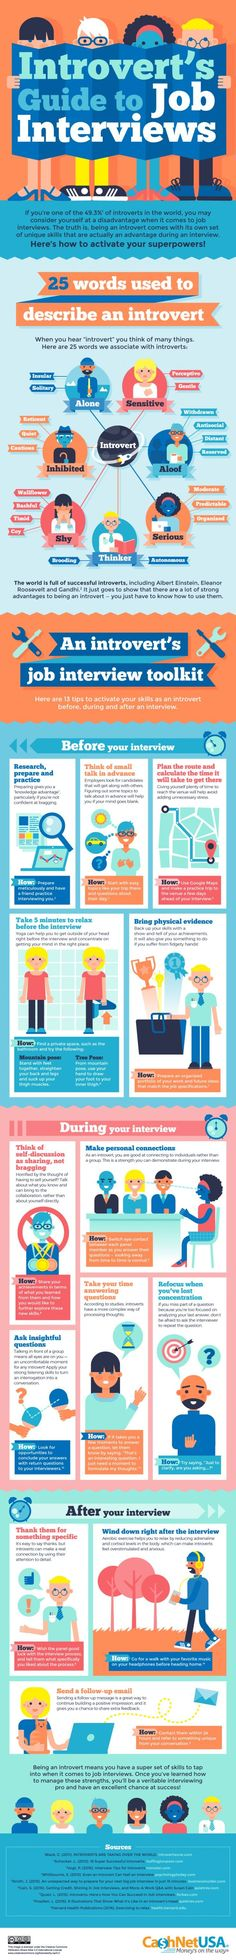 Being an introvert doesn't mean potential employers are less likely to see and recognize your unique strengths if you take the right approach to interviewing.Use these tips to boost your confidence through preparation and an introvert-friendly mindset to let those abilities shine.Via CashNetUSA.Like infographics? So do we.